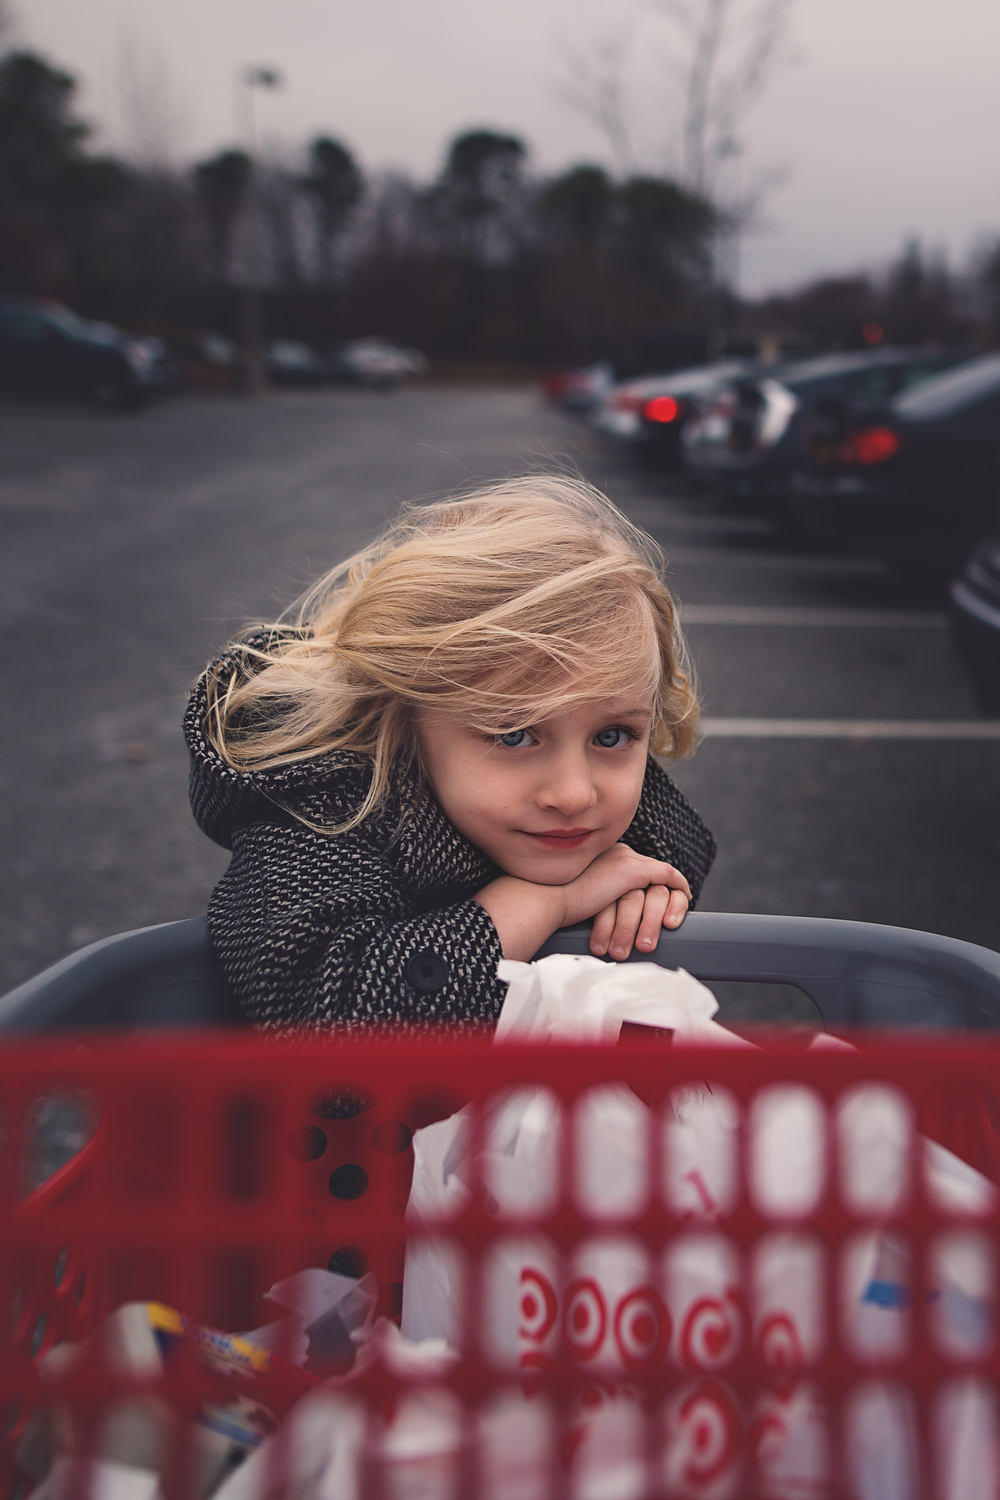 Hello-olivia-photography-long-island-family-portrait-photographer-medford-target-parking-lot.jpg